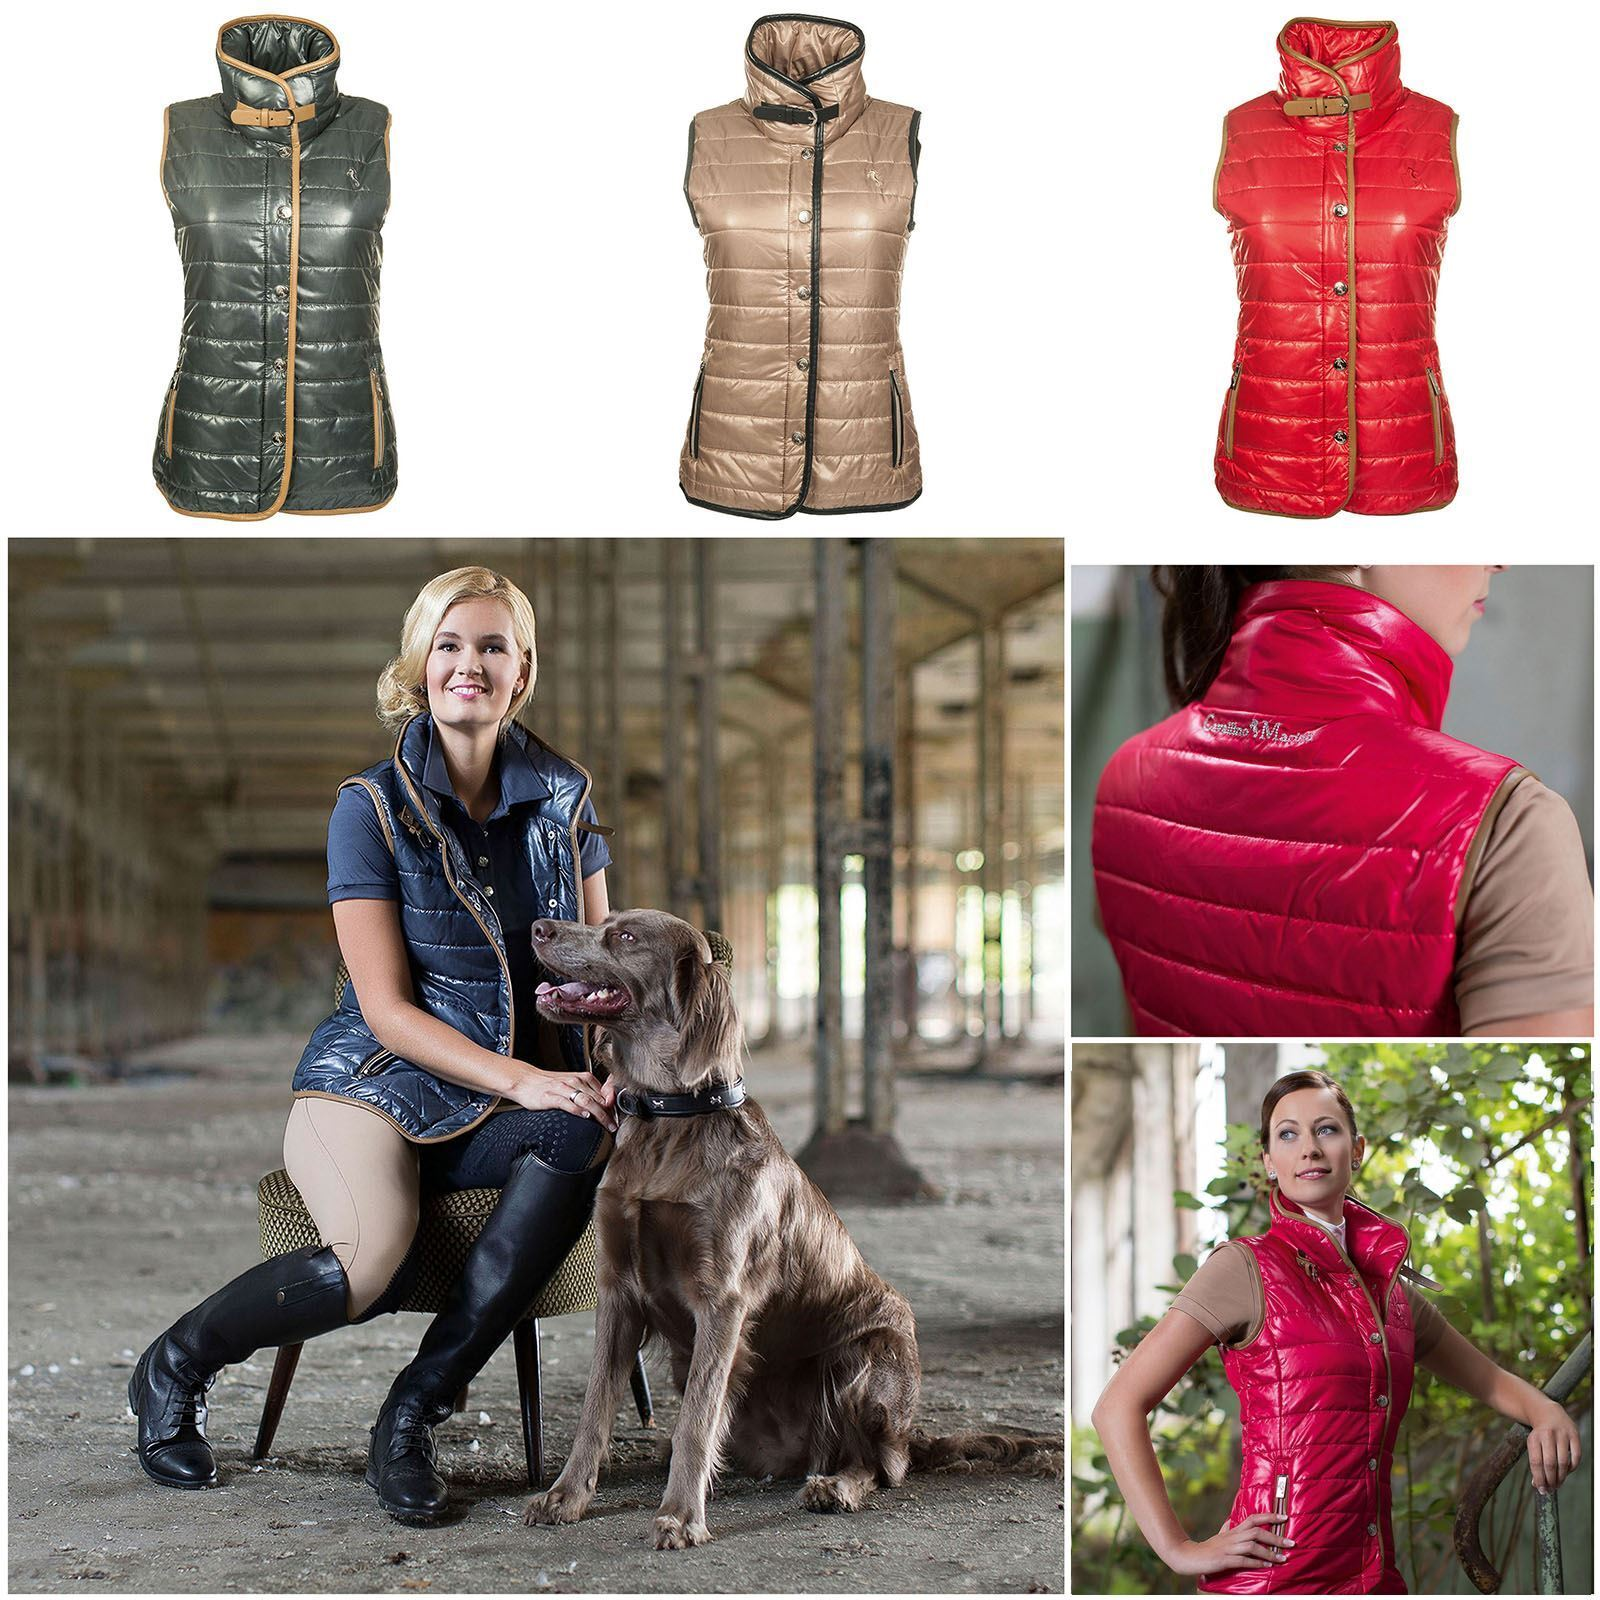 HKM Womens Riders Show Fashion Competition Padded Breathable Zip Up Gilet Top